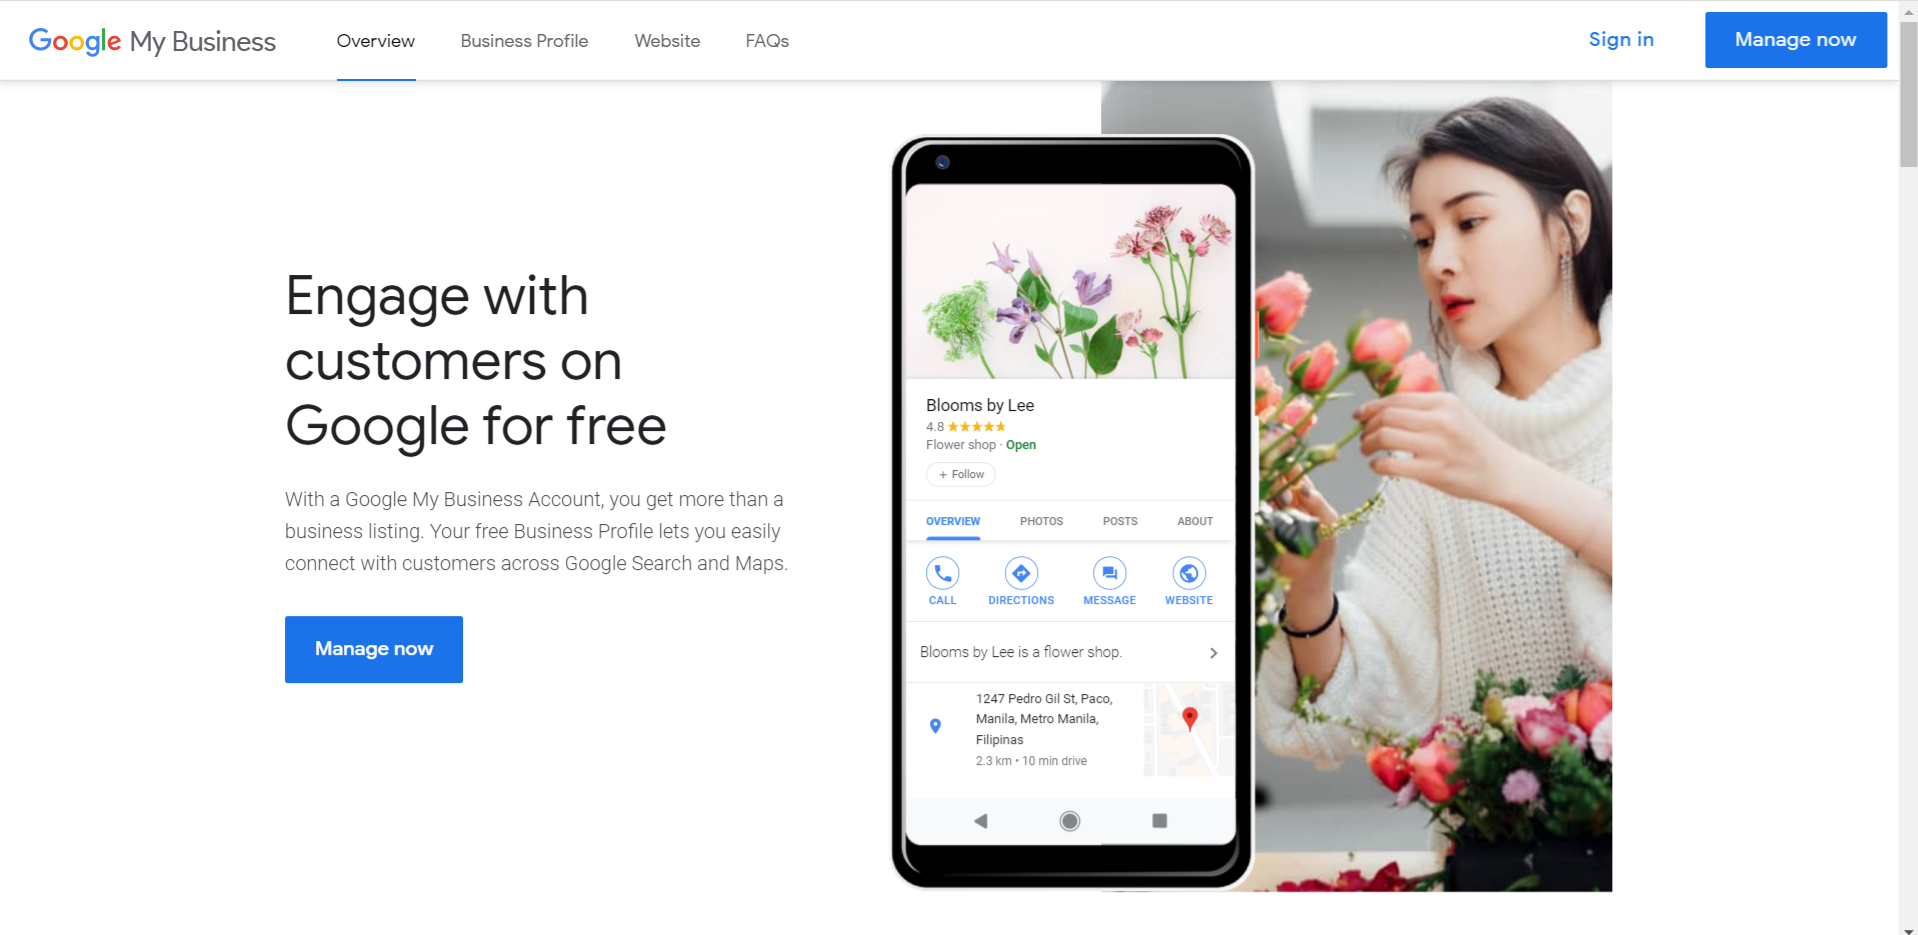 google-my-business-sign-up